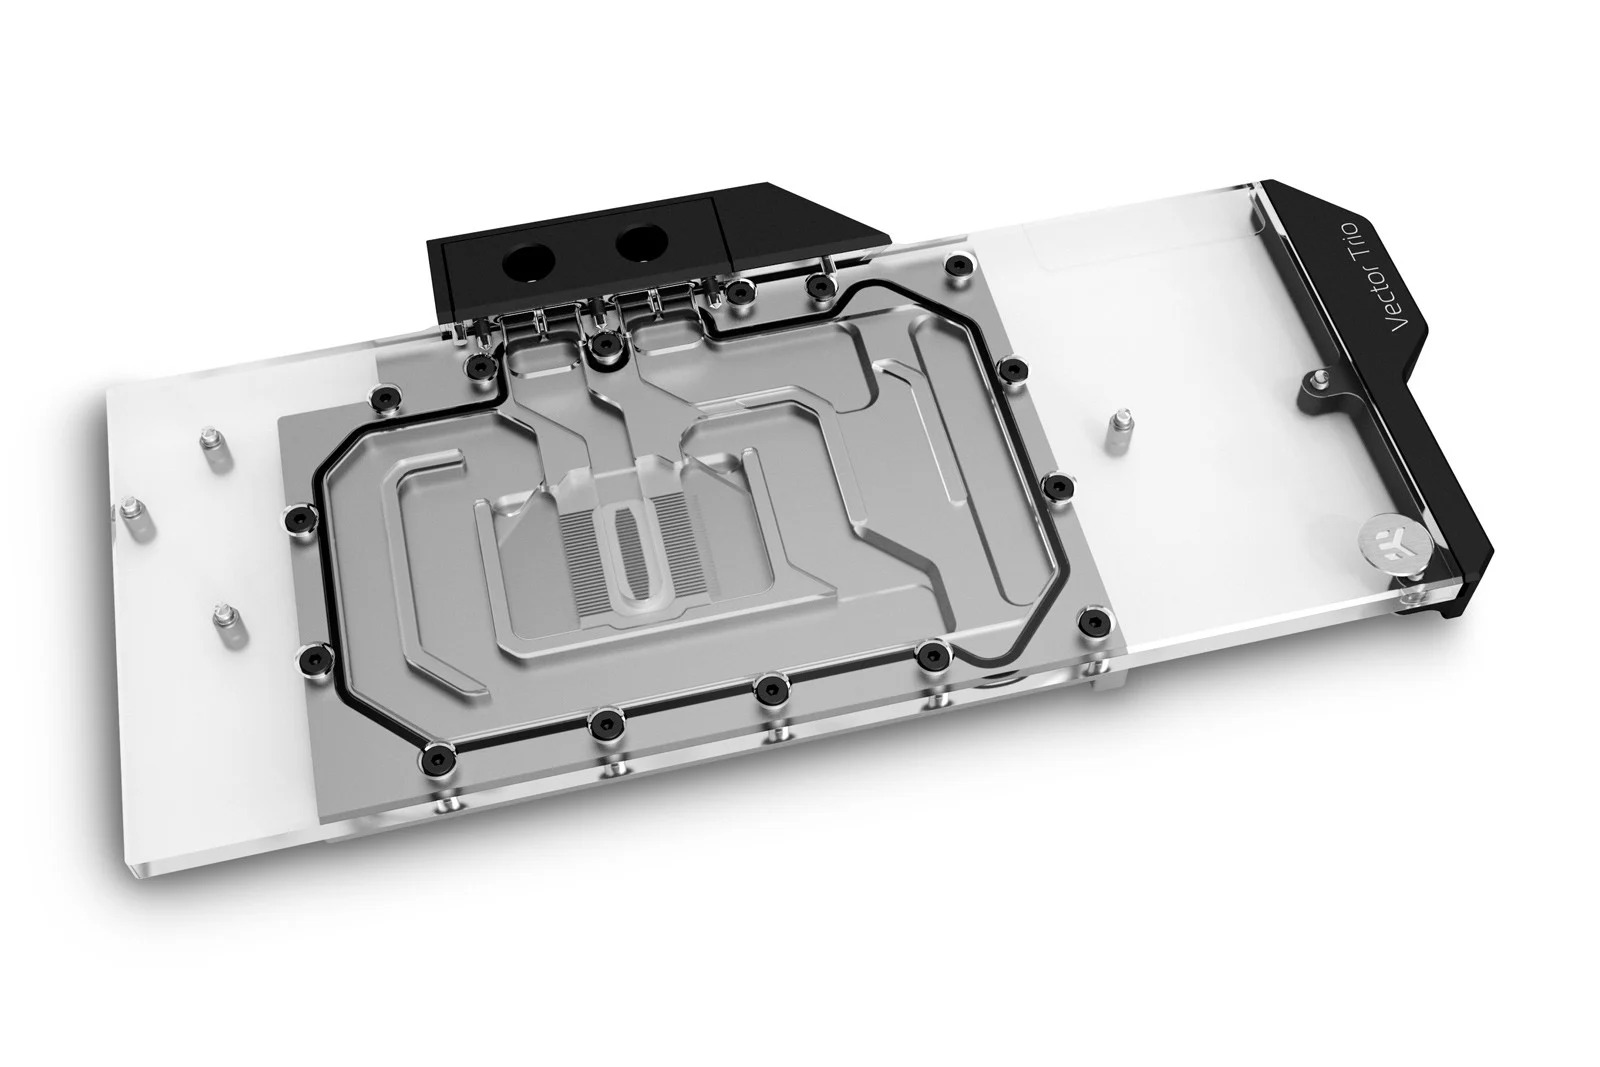 EK launches Vector water blocks for MSI RTX 3080, RTX 3090 TRIO and SUPRIM graphics cards – VideoCardz.com